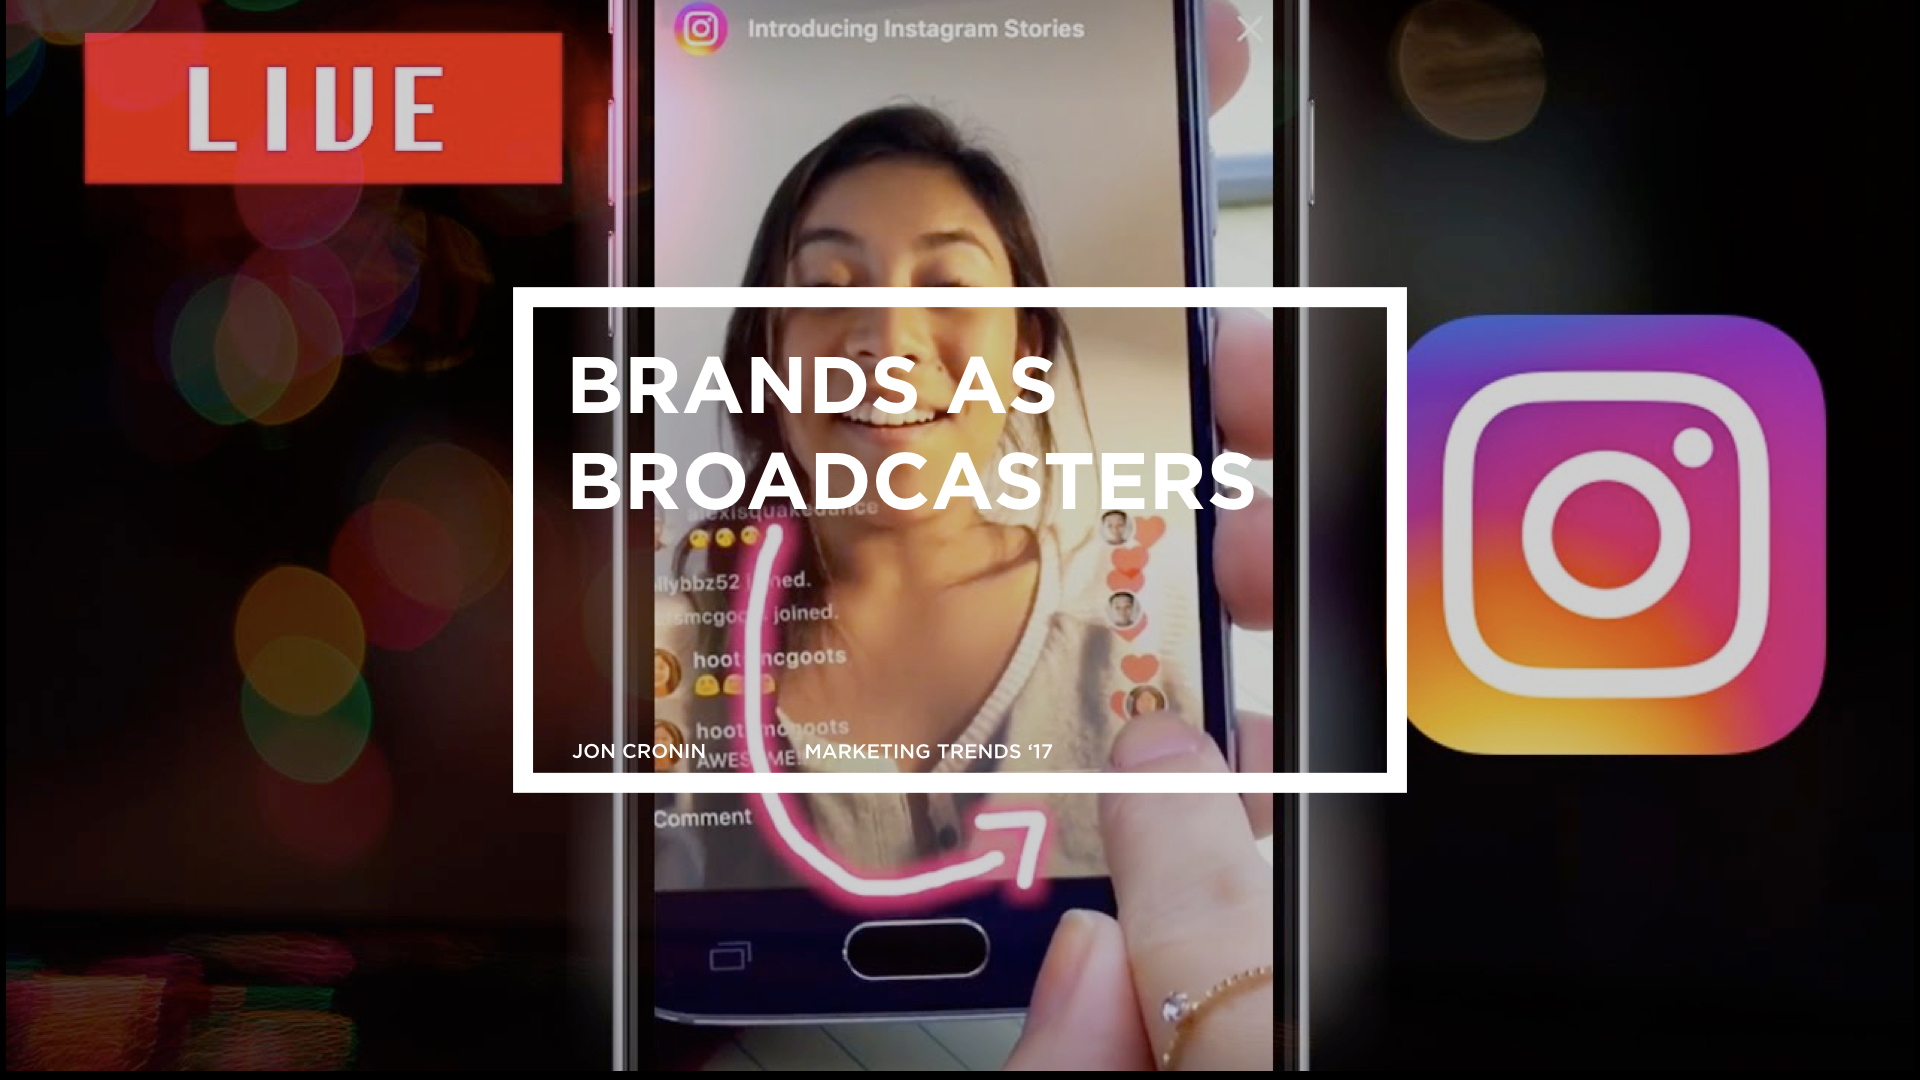 Did you know the world's population is is almost 7.5 billion and 2.5 of them are on social media? It's no wonder brands have spent almost 10.9 billion dollars trying to connect with them there. It's where we all live and social is evolving quickly with each new update of Instagram and Snapchat.  Live Video  is here and it's growing more each day. Youtube Live, Instagram Live, Facebook Live, Periscope Pro are front and center and if you don't have a Live strategy yet you are missing the boat. It's no longer just pretty pictures, clever copy and beautiful produced video, it's  Live  and it's now. As brands are now publishers, they also need to be  Live  broadcasters.